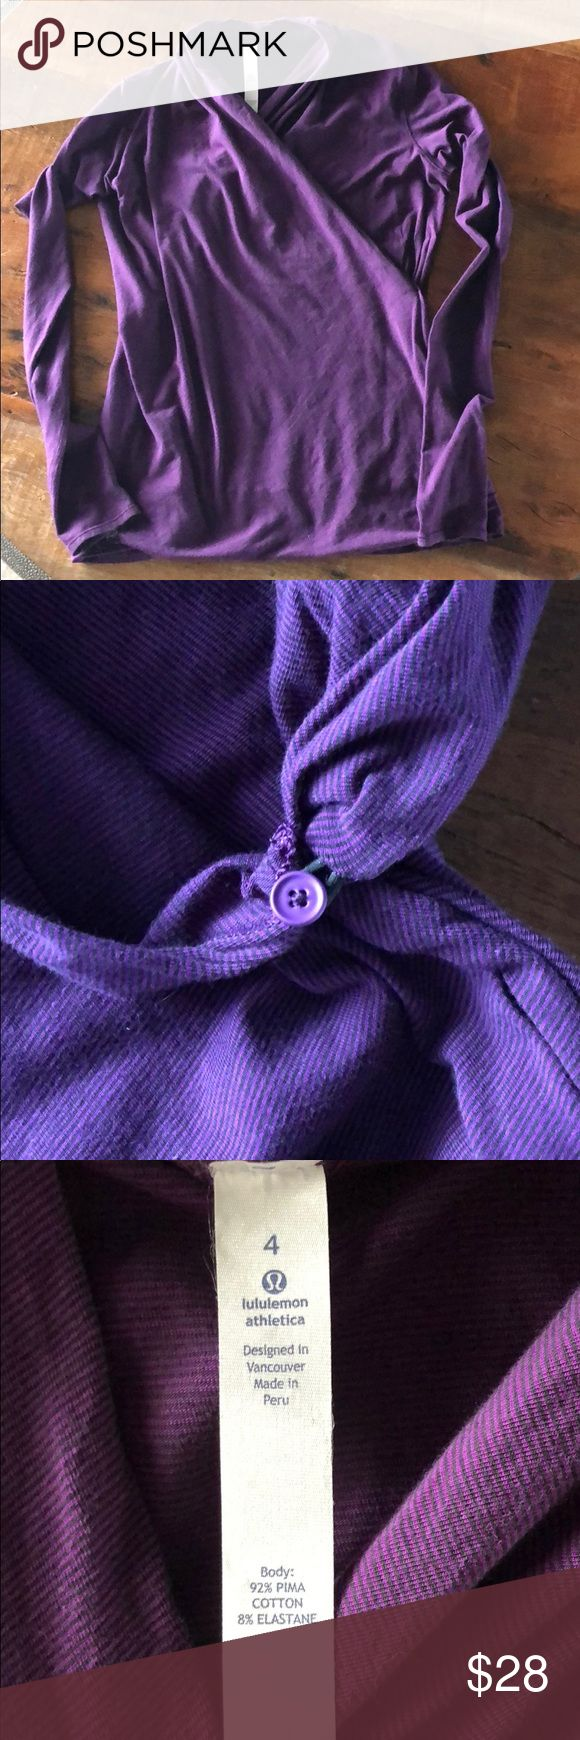 Lululemon Top Purple Long sleeve Lululemon top, that has a side button hook (see pic) And also has thumb holes in which a picture is shown. 92% Pima Cotton/8% Elastane. No holes nor pilling, excellent condition! lululemon athletica Tops Tees - Long Sleeve